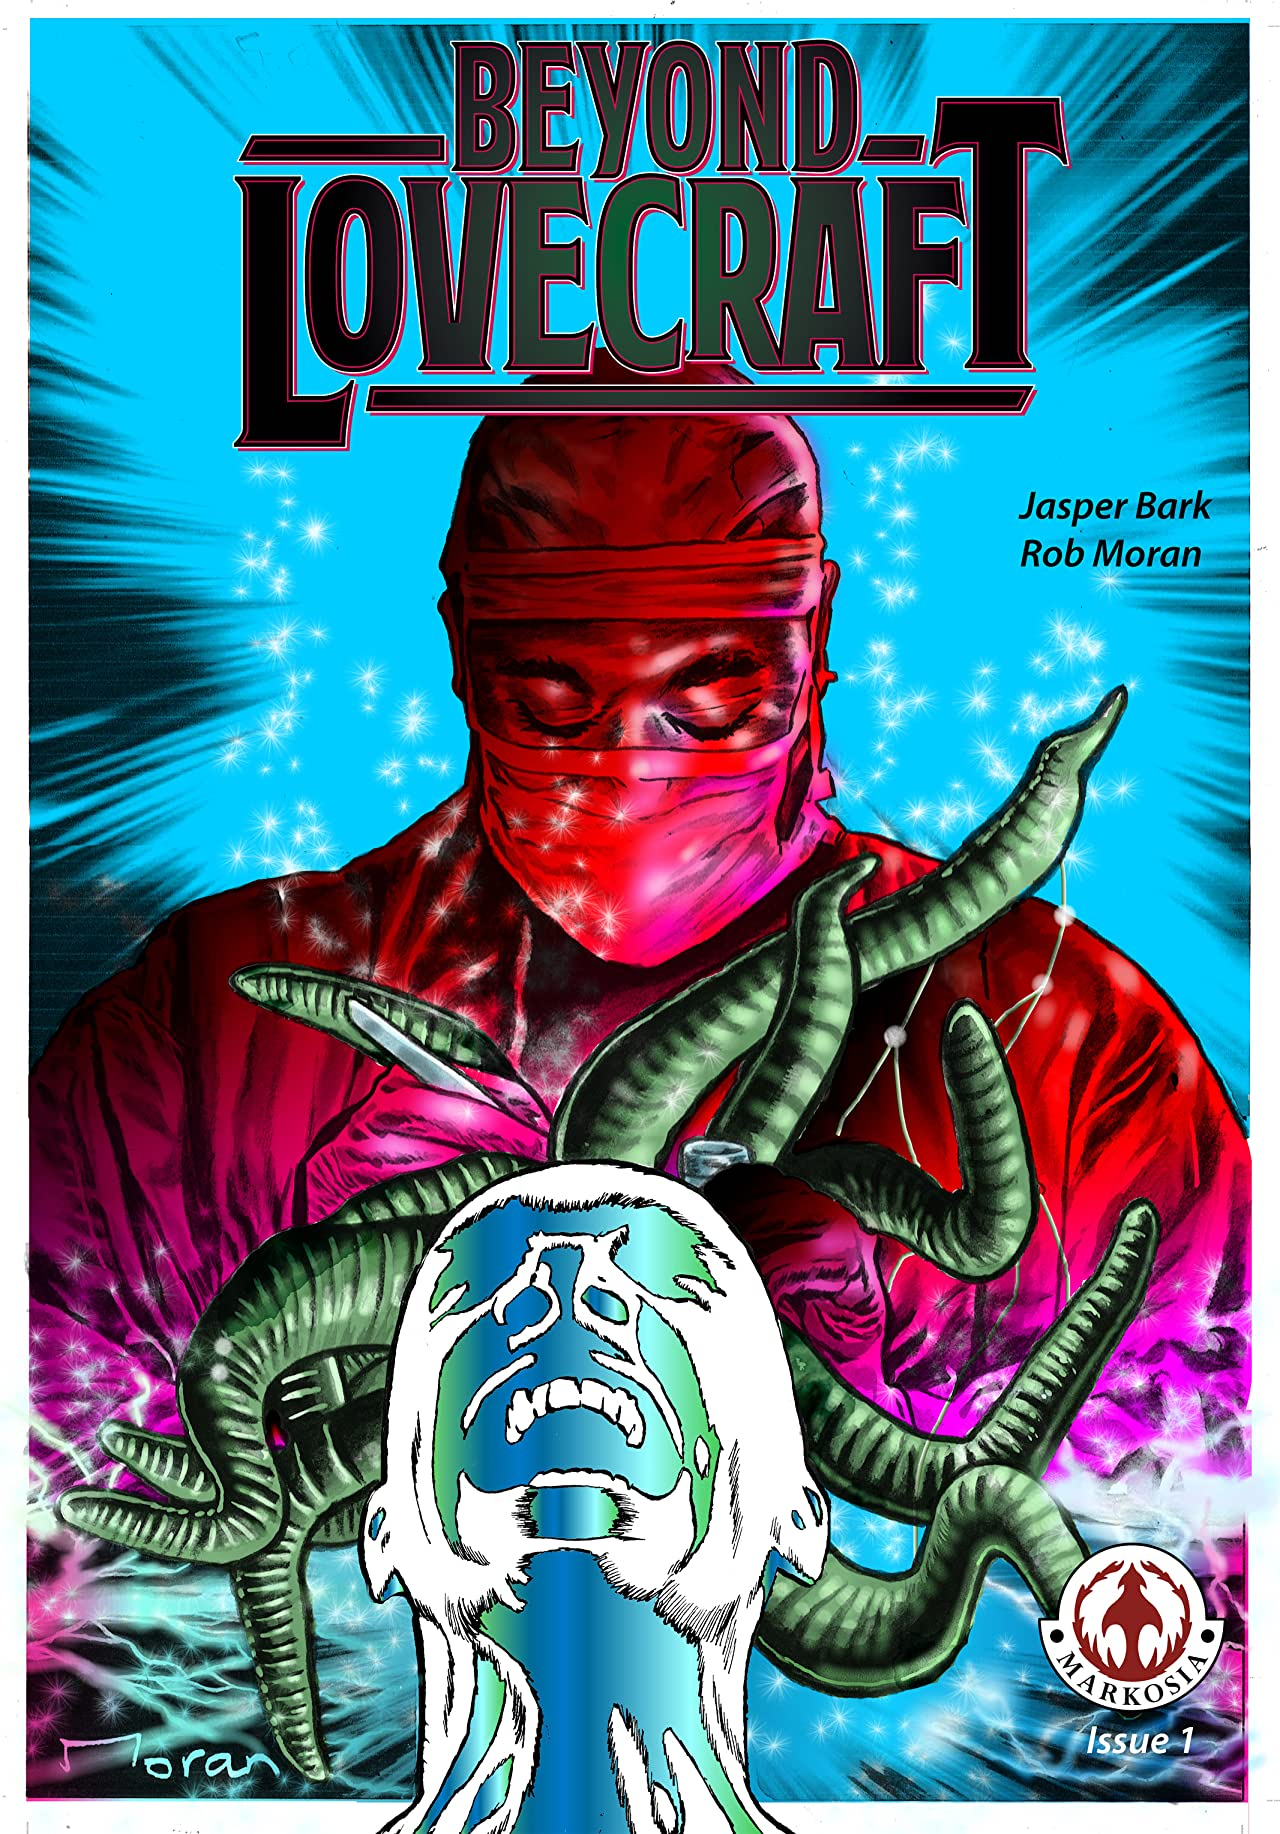 Beyond Lovecraft #1